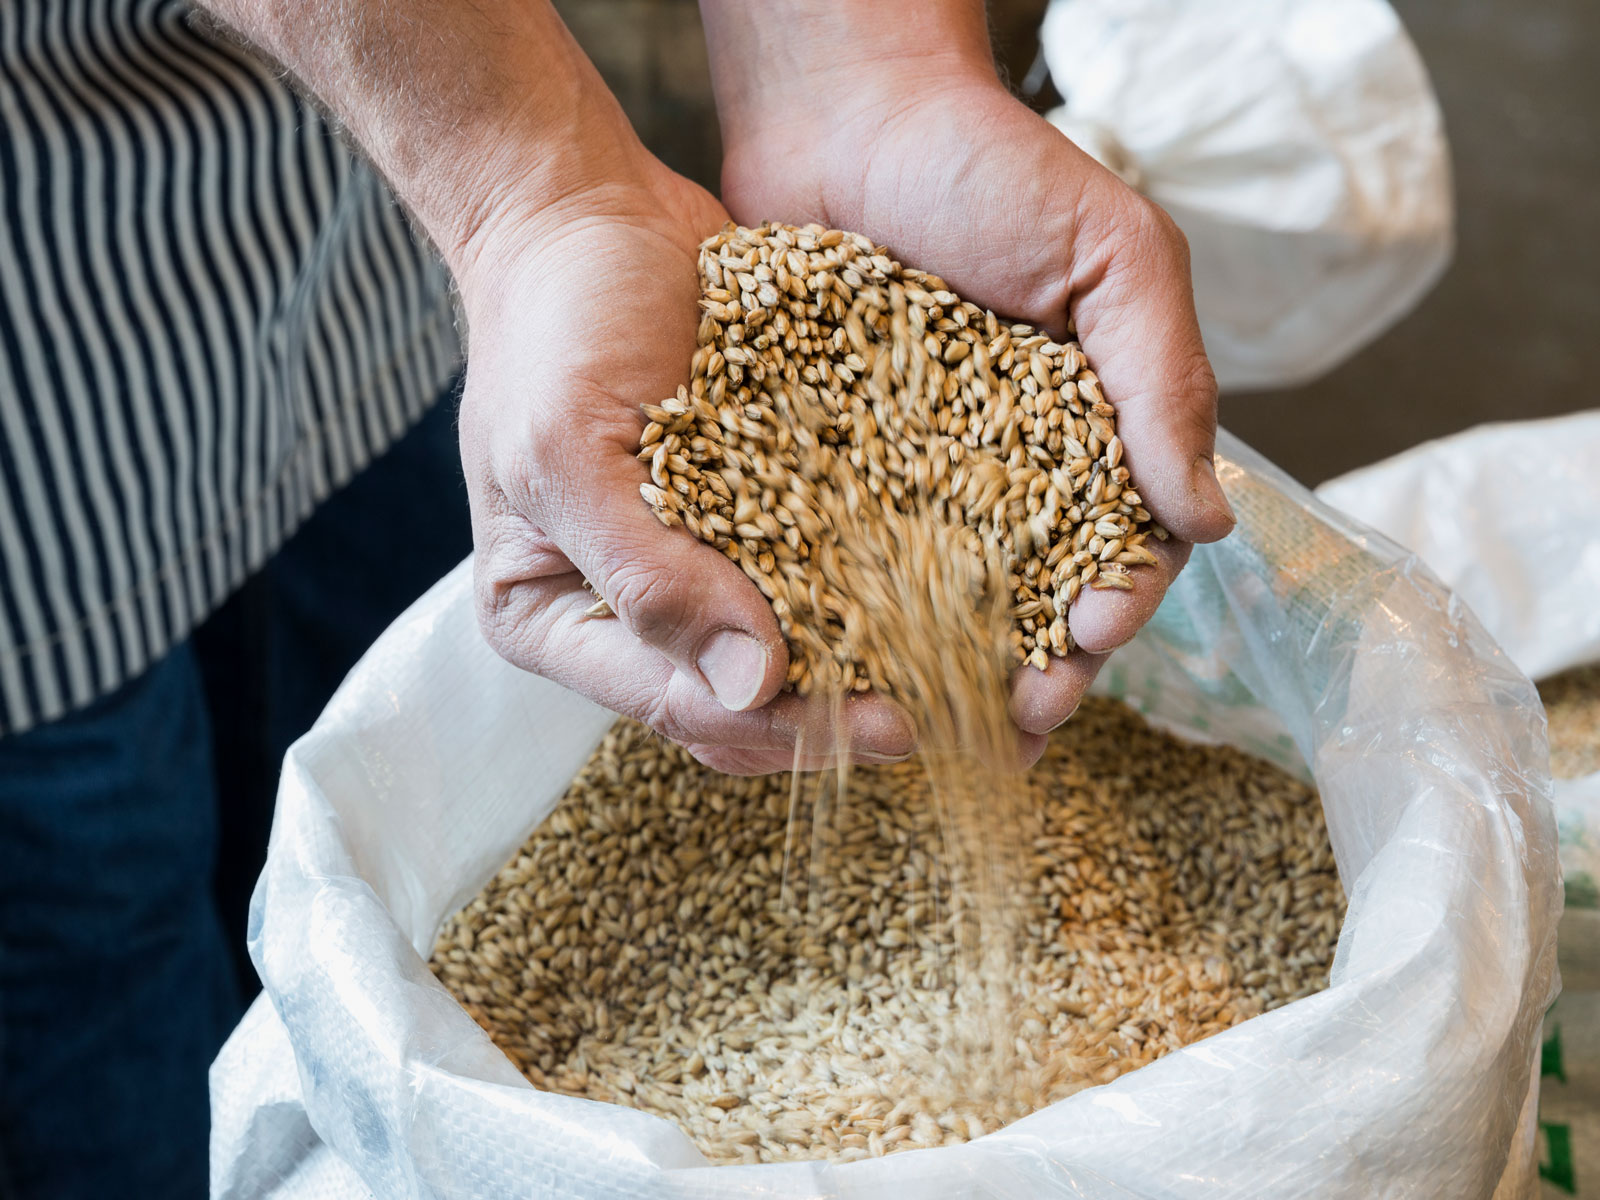 Don't Blame Canada: Beer Prices May Go Up Regardless of a Lackluster Canadian Barley Harvest